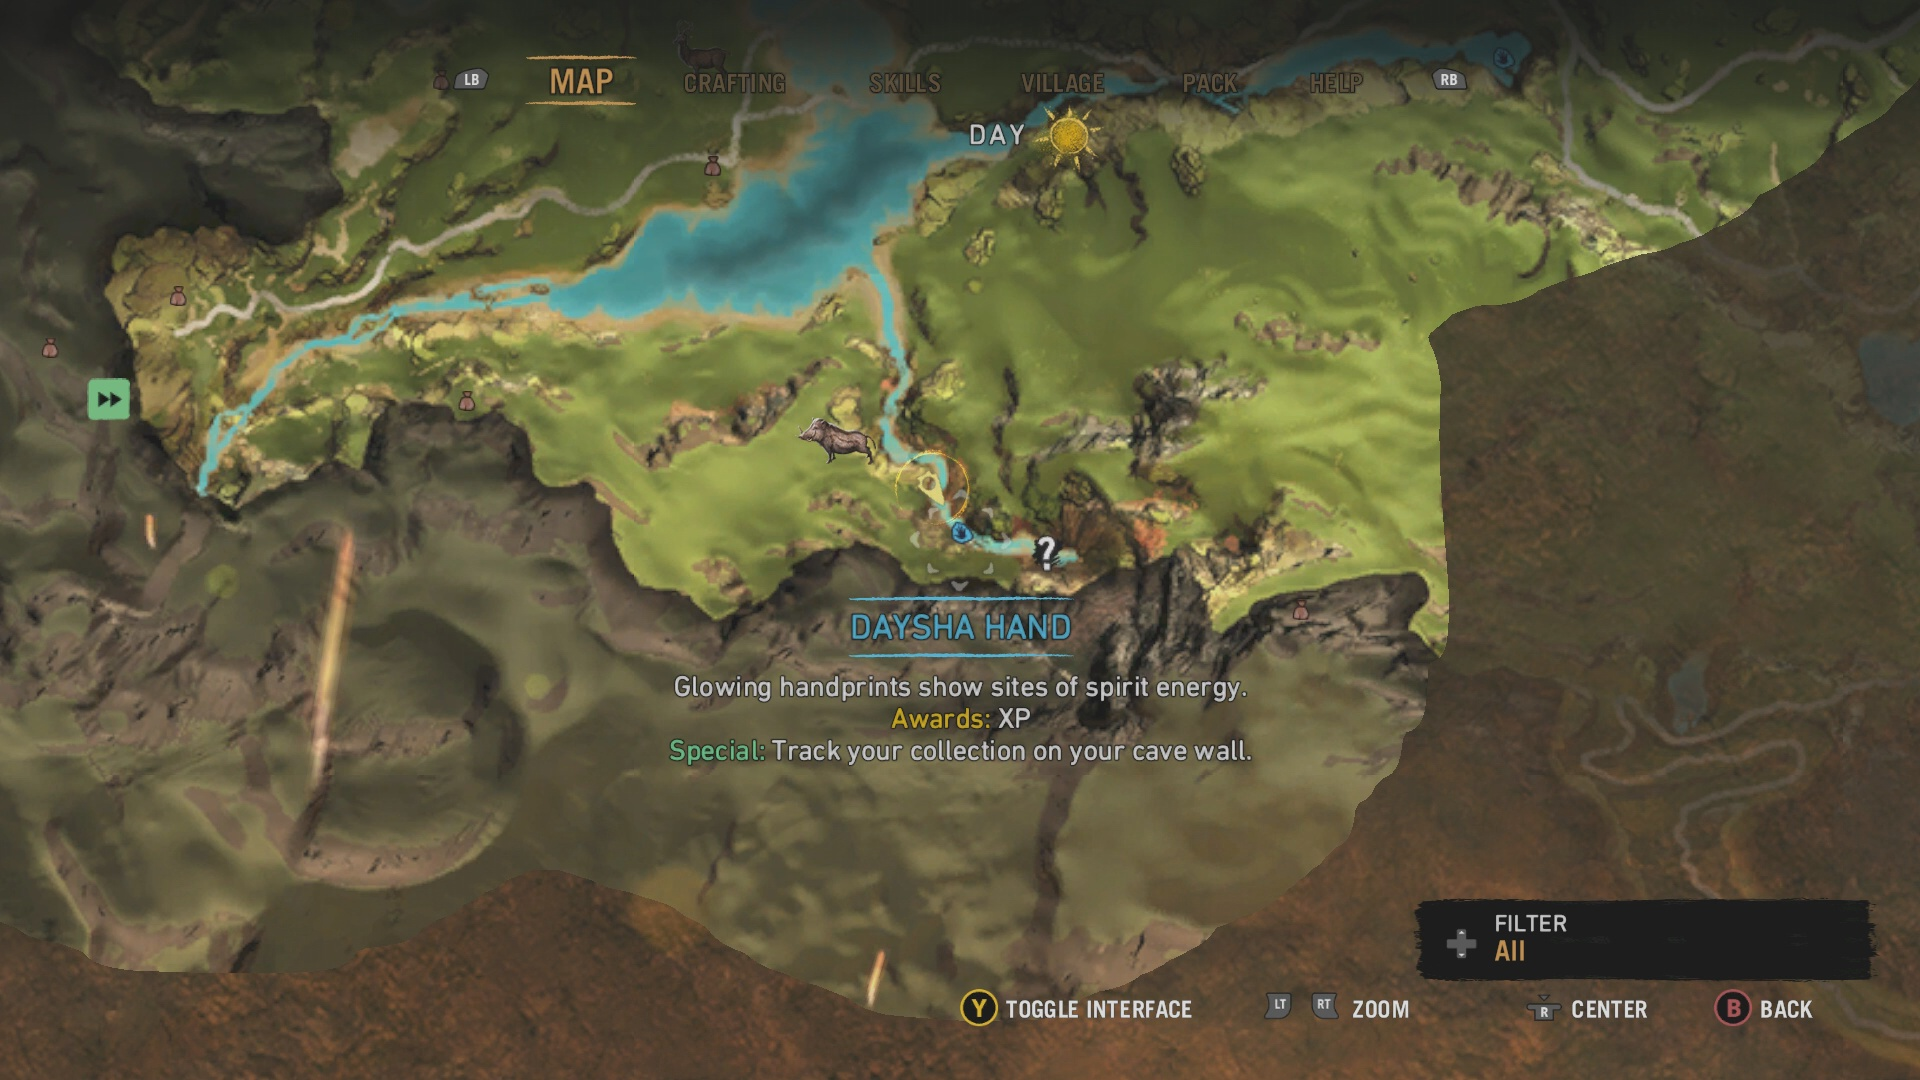 Far cry primal all daysha hand locations usgamer daysha hand 1 starting from your village head south locate a waterfall at the end of the river the daysha hand is at the base of the waterfall gumiabroncs Choice Image